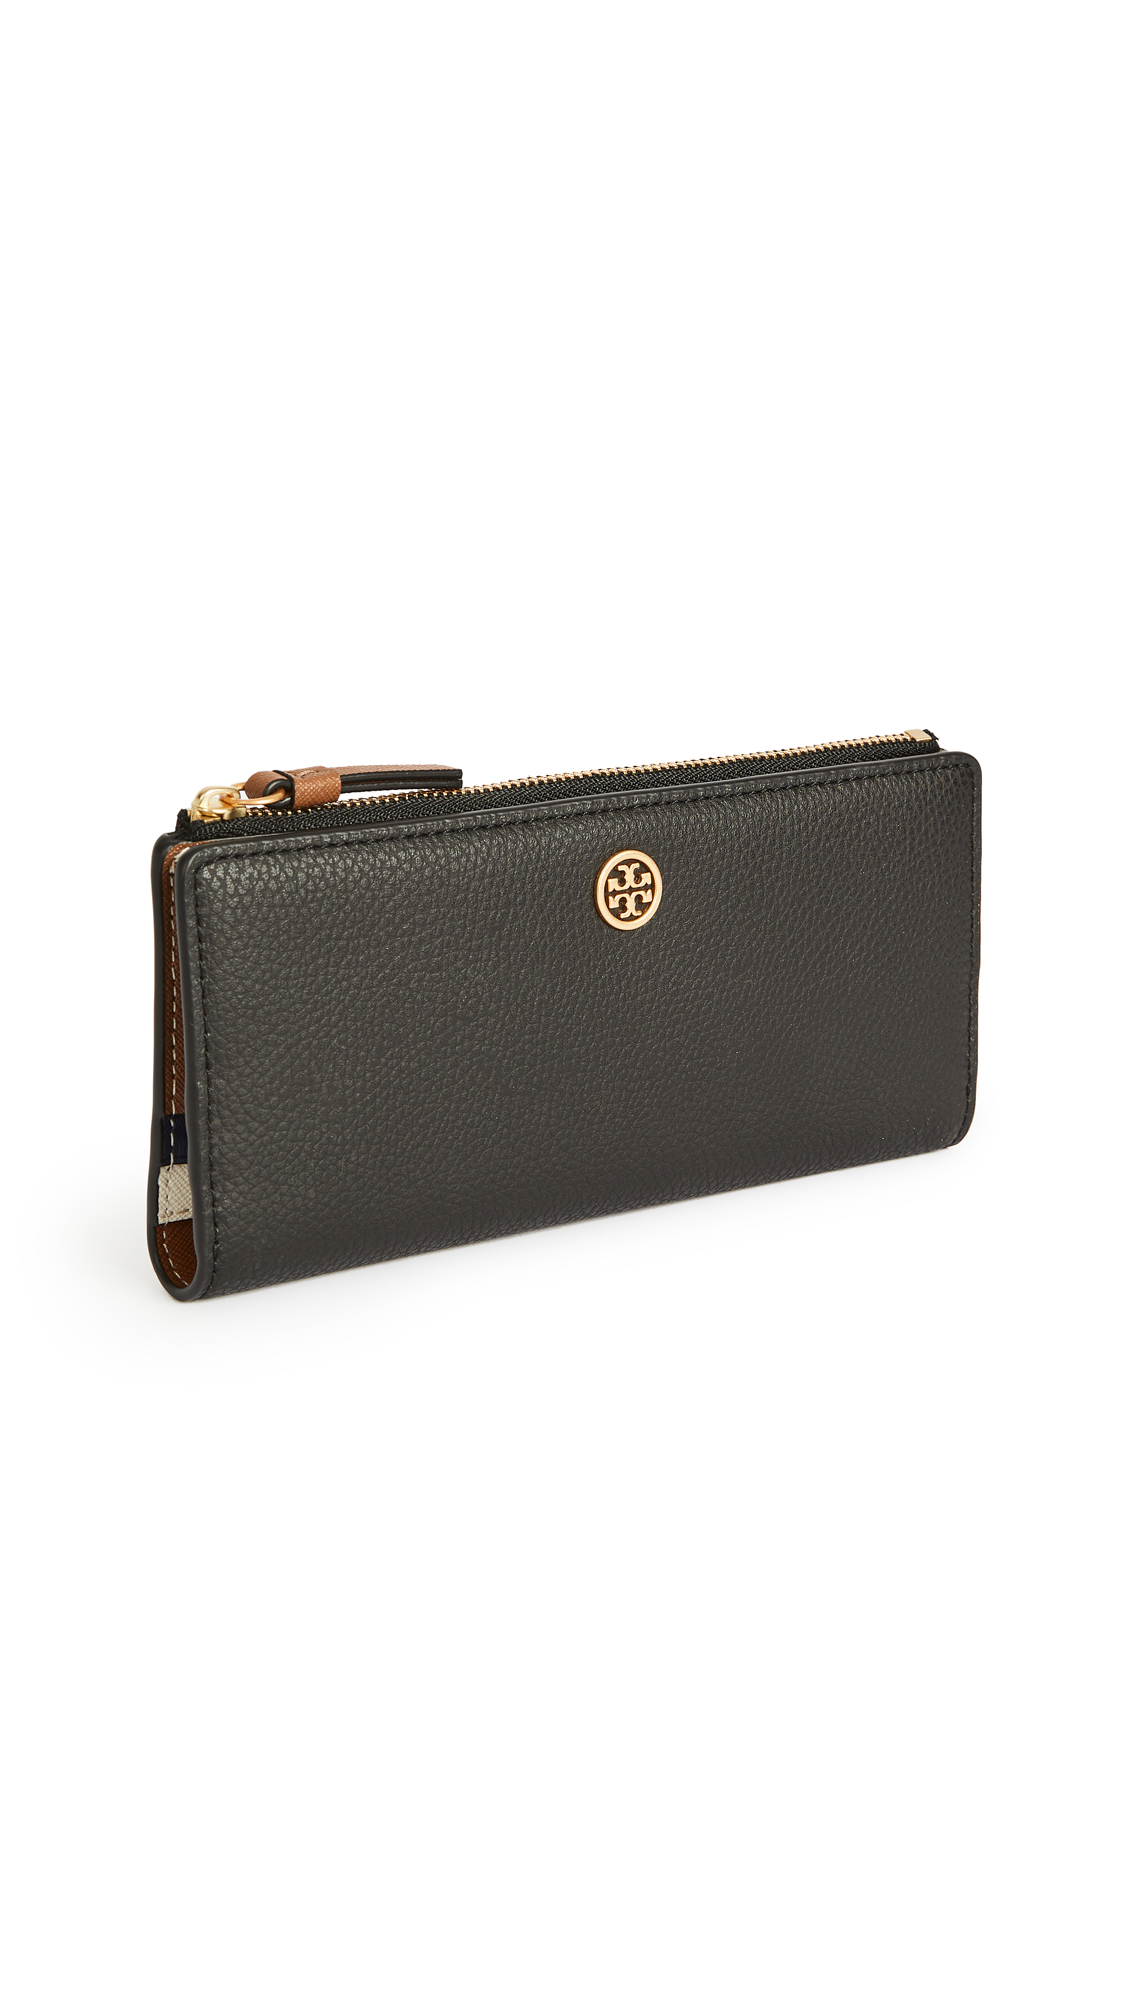 Tory Burch Walker Zip Slim Wallet